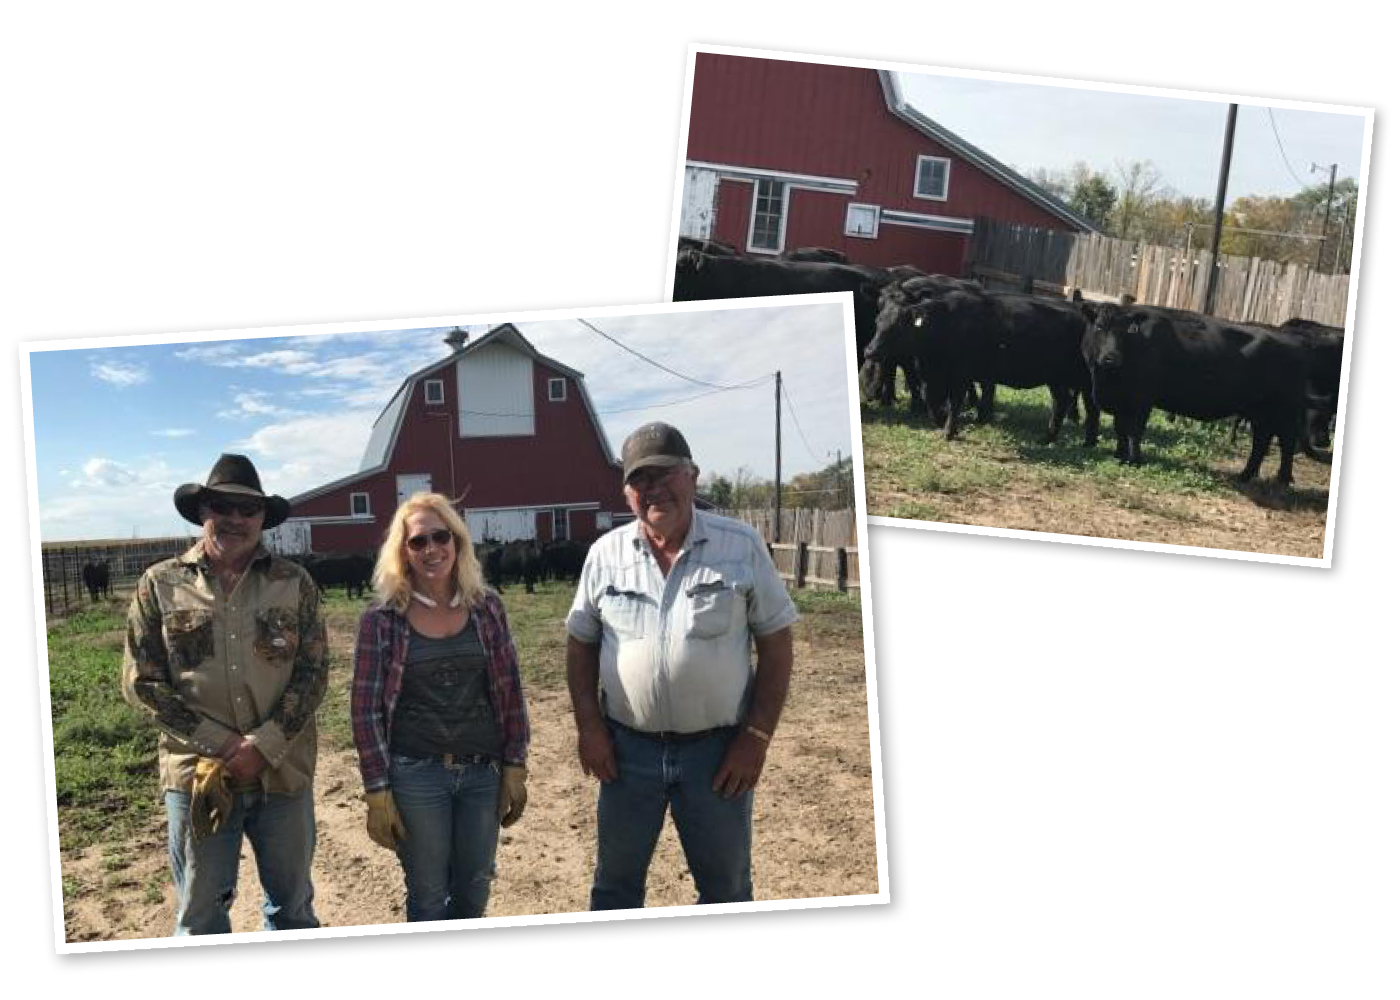 Mark's neighbors, Greg and Marsha Krance helped transfer the cattle to Jim's farm